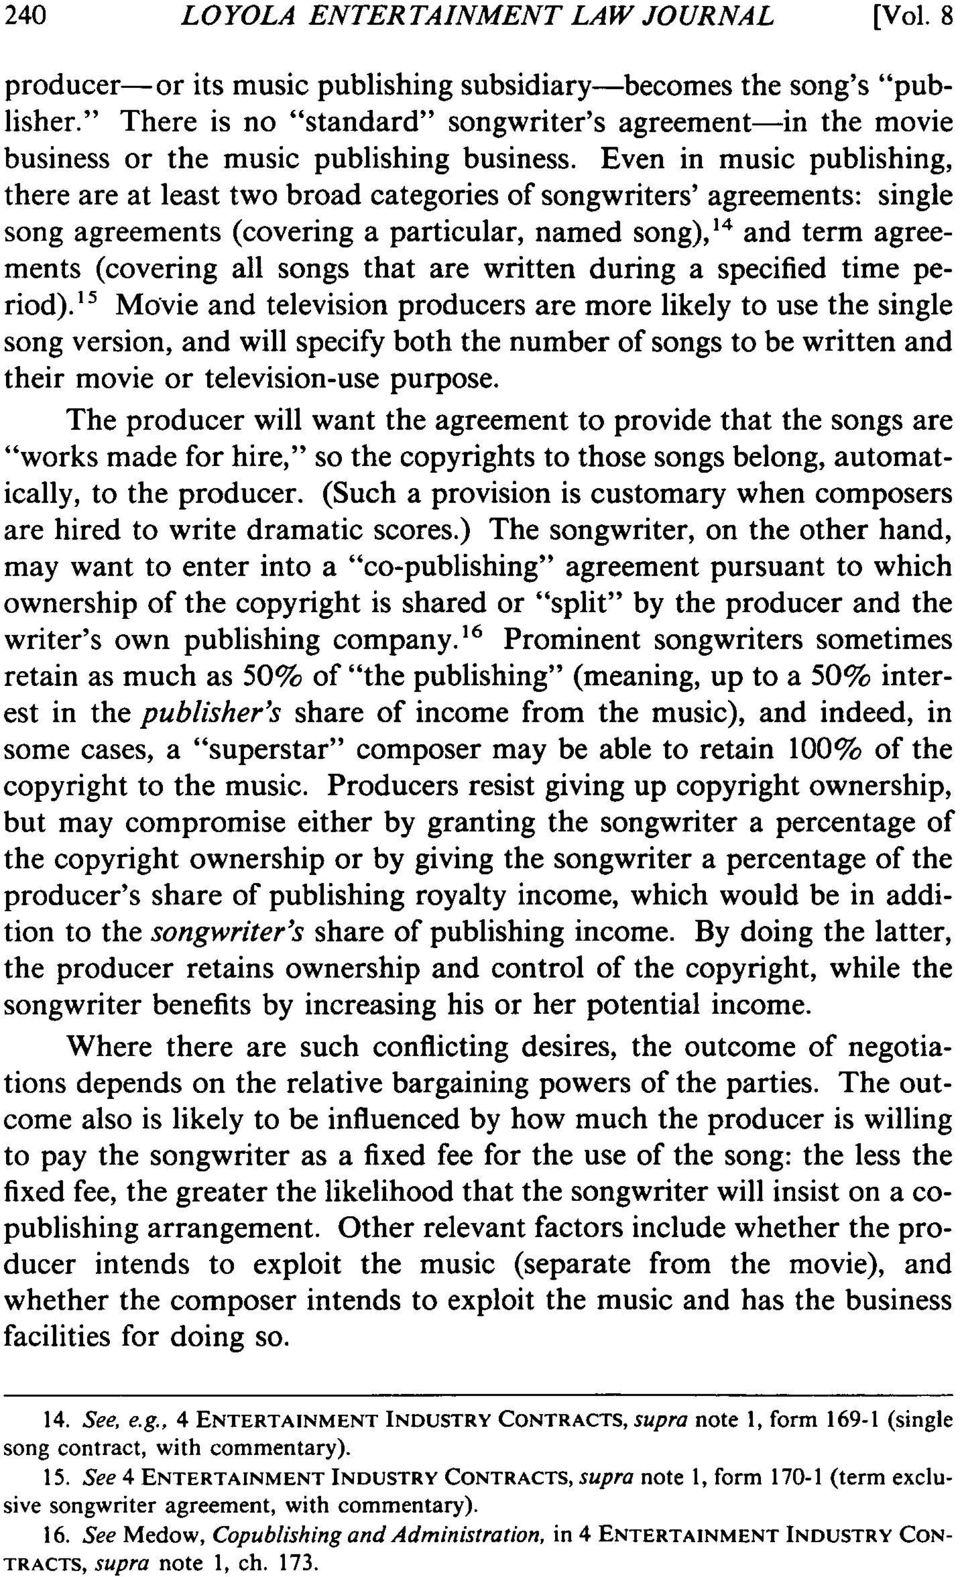 Even in music publishing, there are at least two broad categories of songwriters' agreements: single song agreements (covering a particular, named song), 14 and term agreements (covering all songs